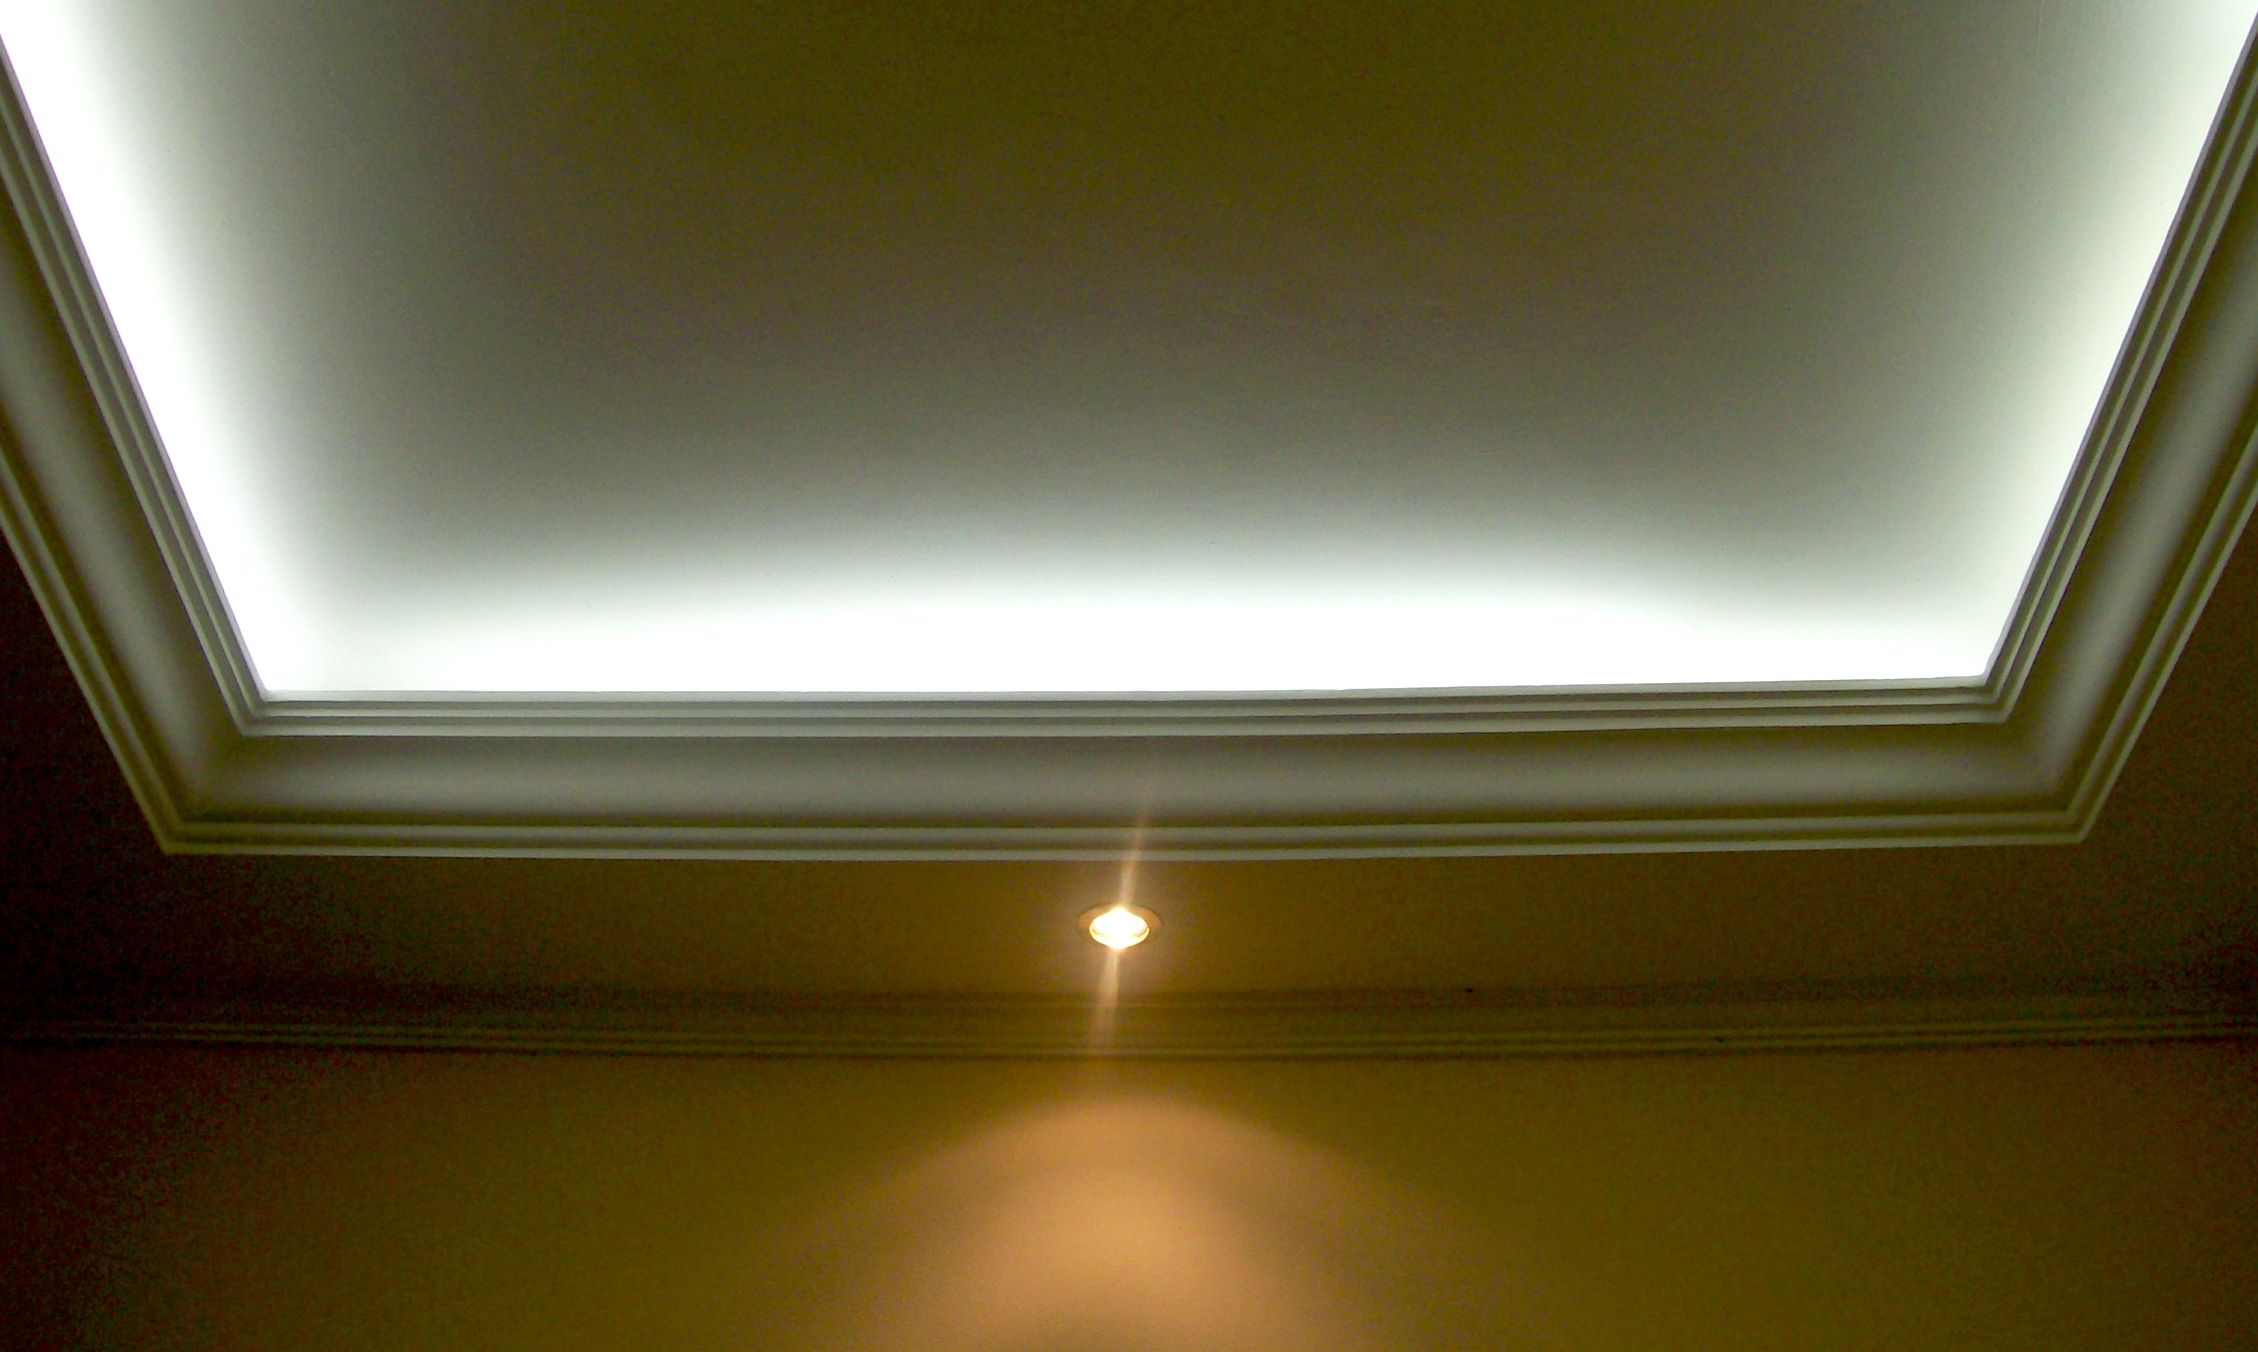 Recessed lighting to show off architectural elements interior image of recessed lighting for interior ceiling aloadofball Image collections